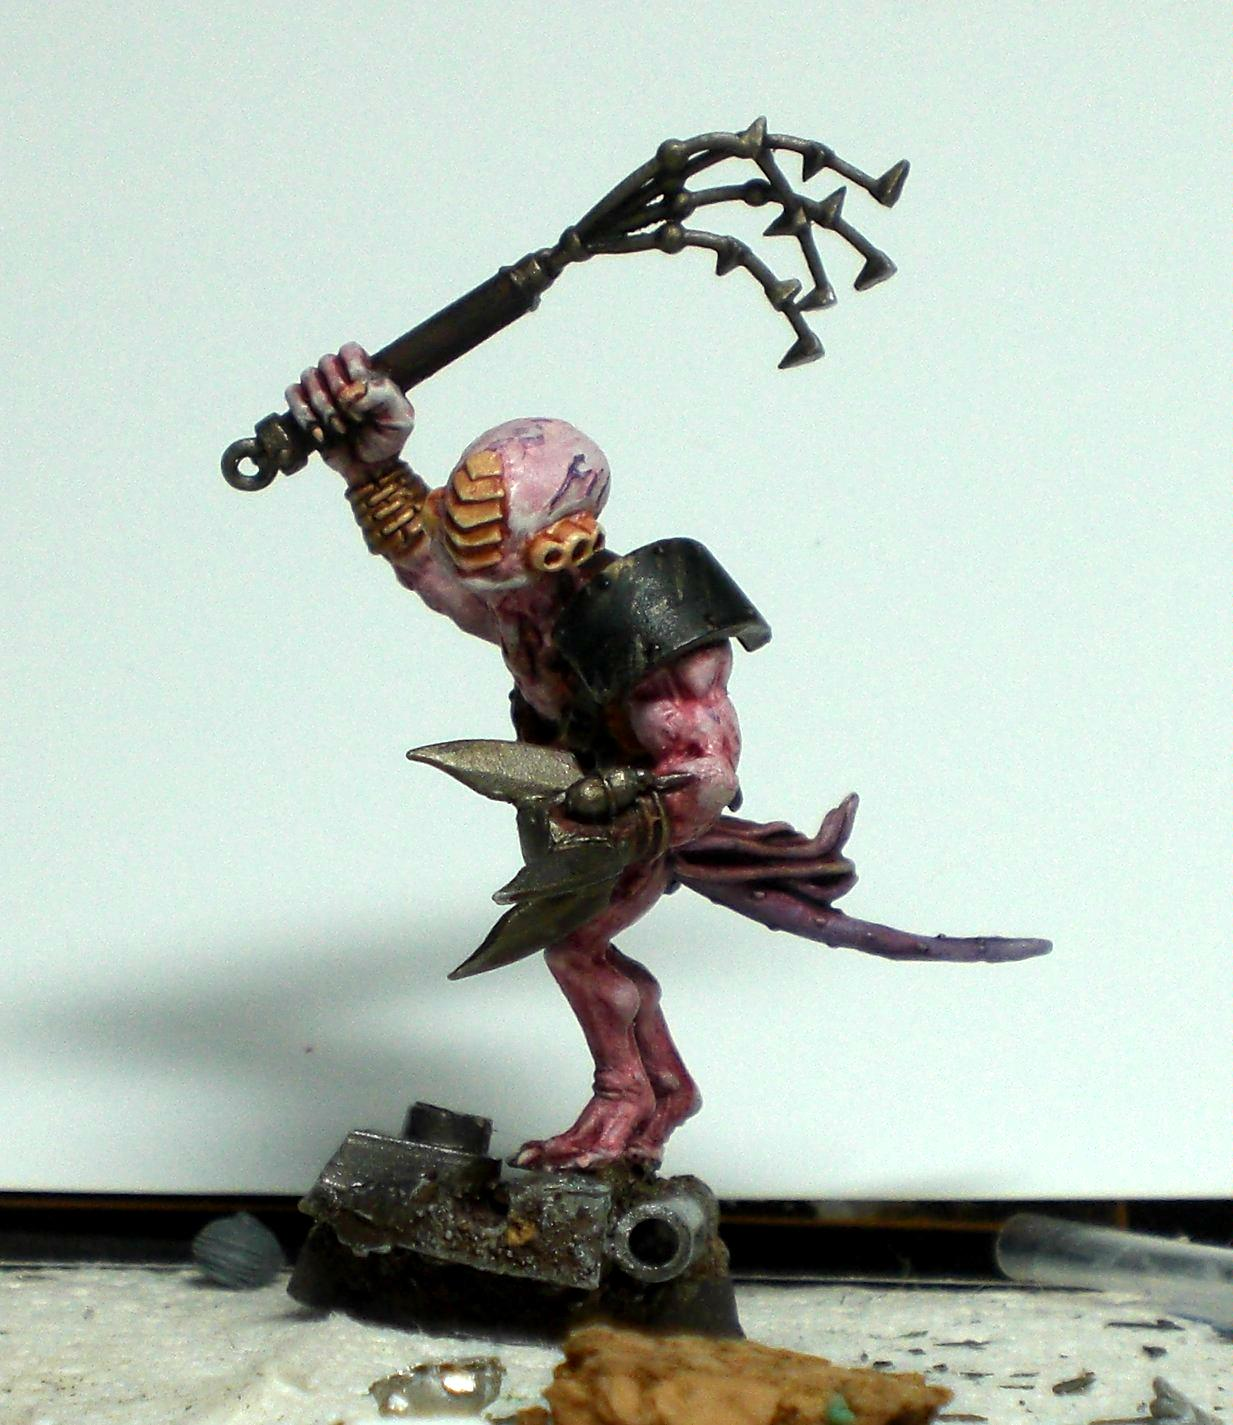 Genestealer Cult, Lost And The Damned, Mutant, Orks